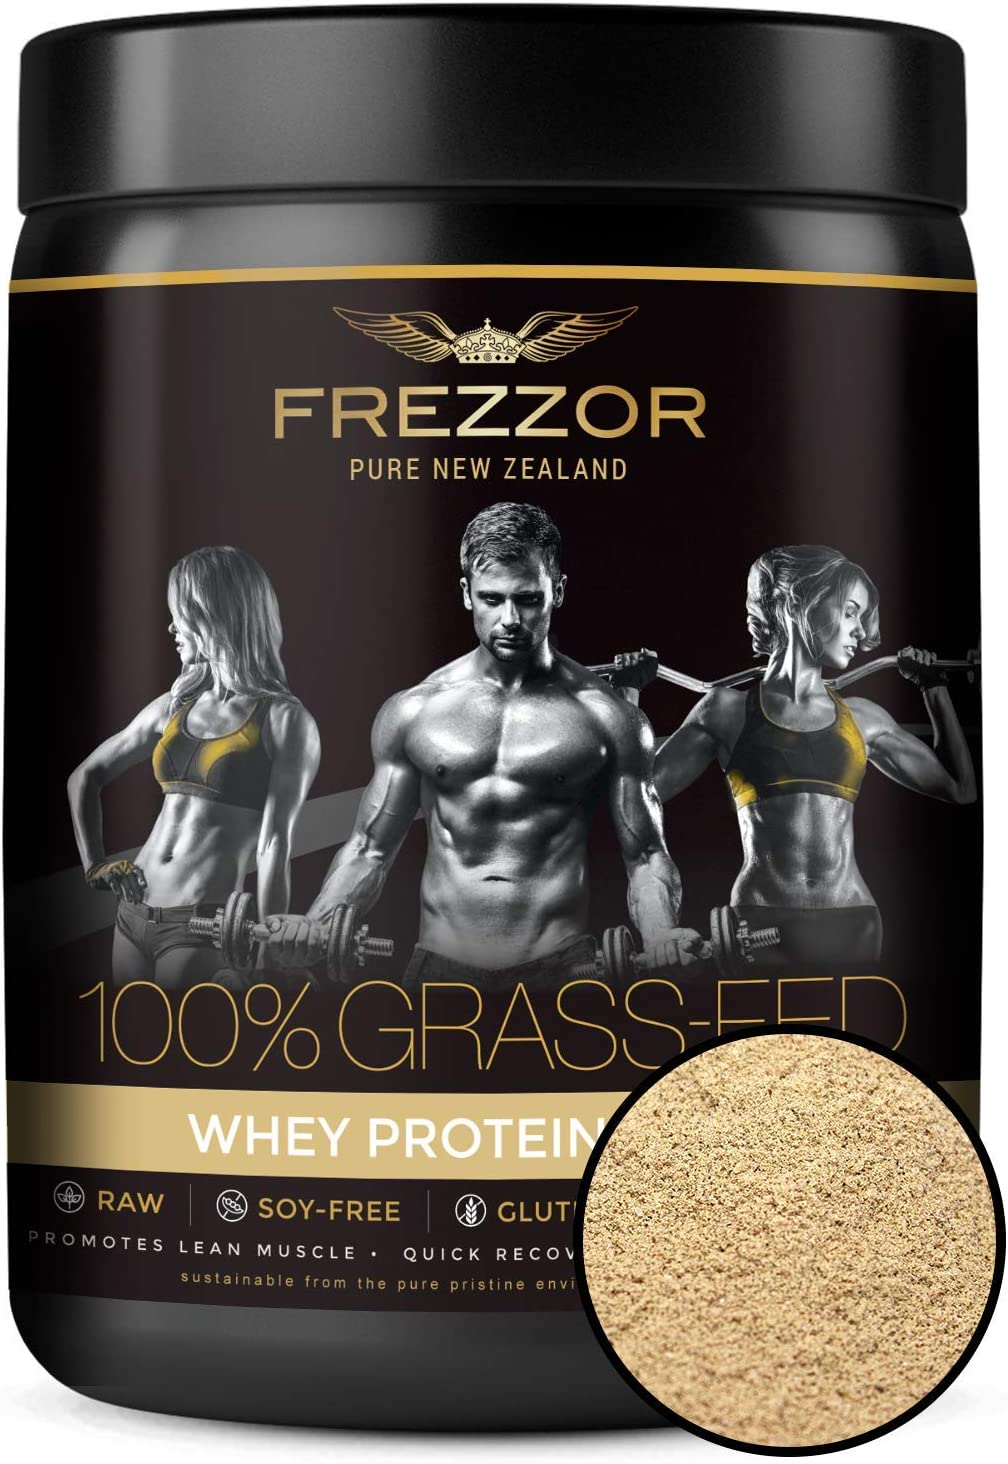 FREZZOR 100% Grass-Fed Whey Protein Shake, Made in New Zealand, Vanilla Custard, Keto Friendly, 24 Superfoods, 29g Protein, 22g BCAAs, GMO-Free, rBGH-Free, No Added Sugar, No Preservatives, 600 Grams